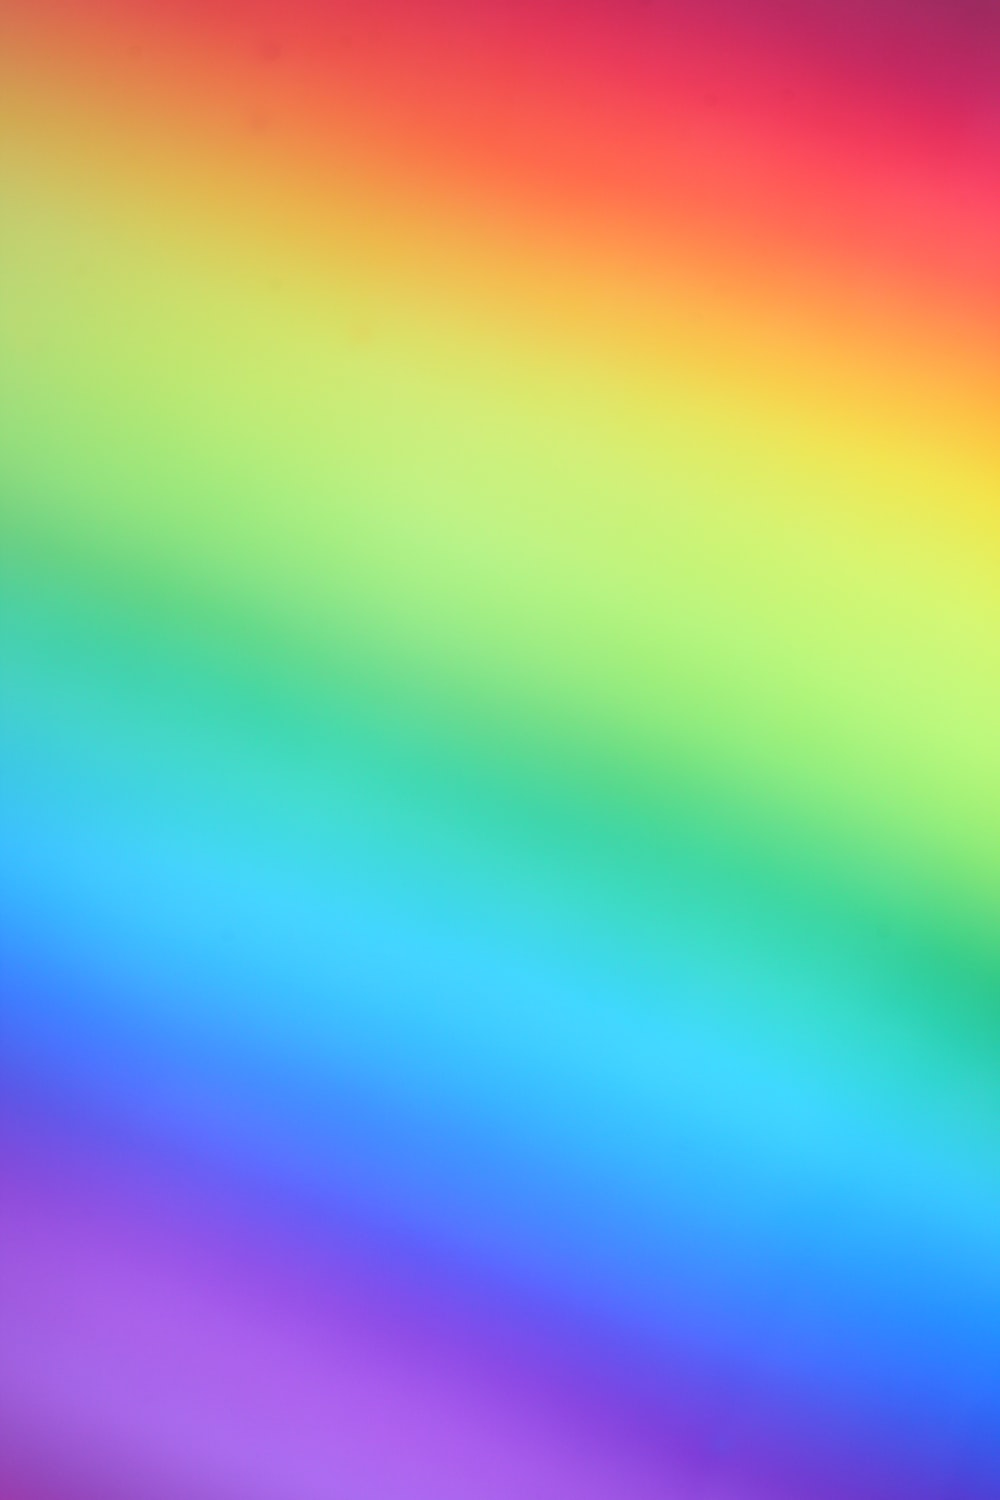 Rainbow Wallpaper Pictures Download Free Images On Unsplash